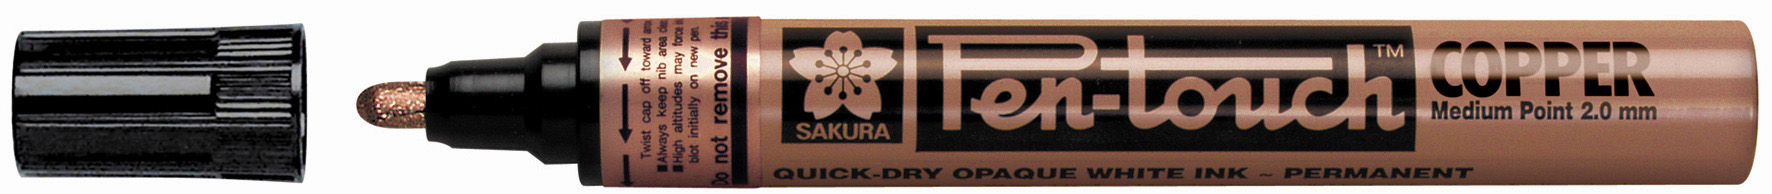 Sakura Pen Touch Permanent Marker - Medium Tip - Gold